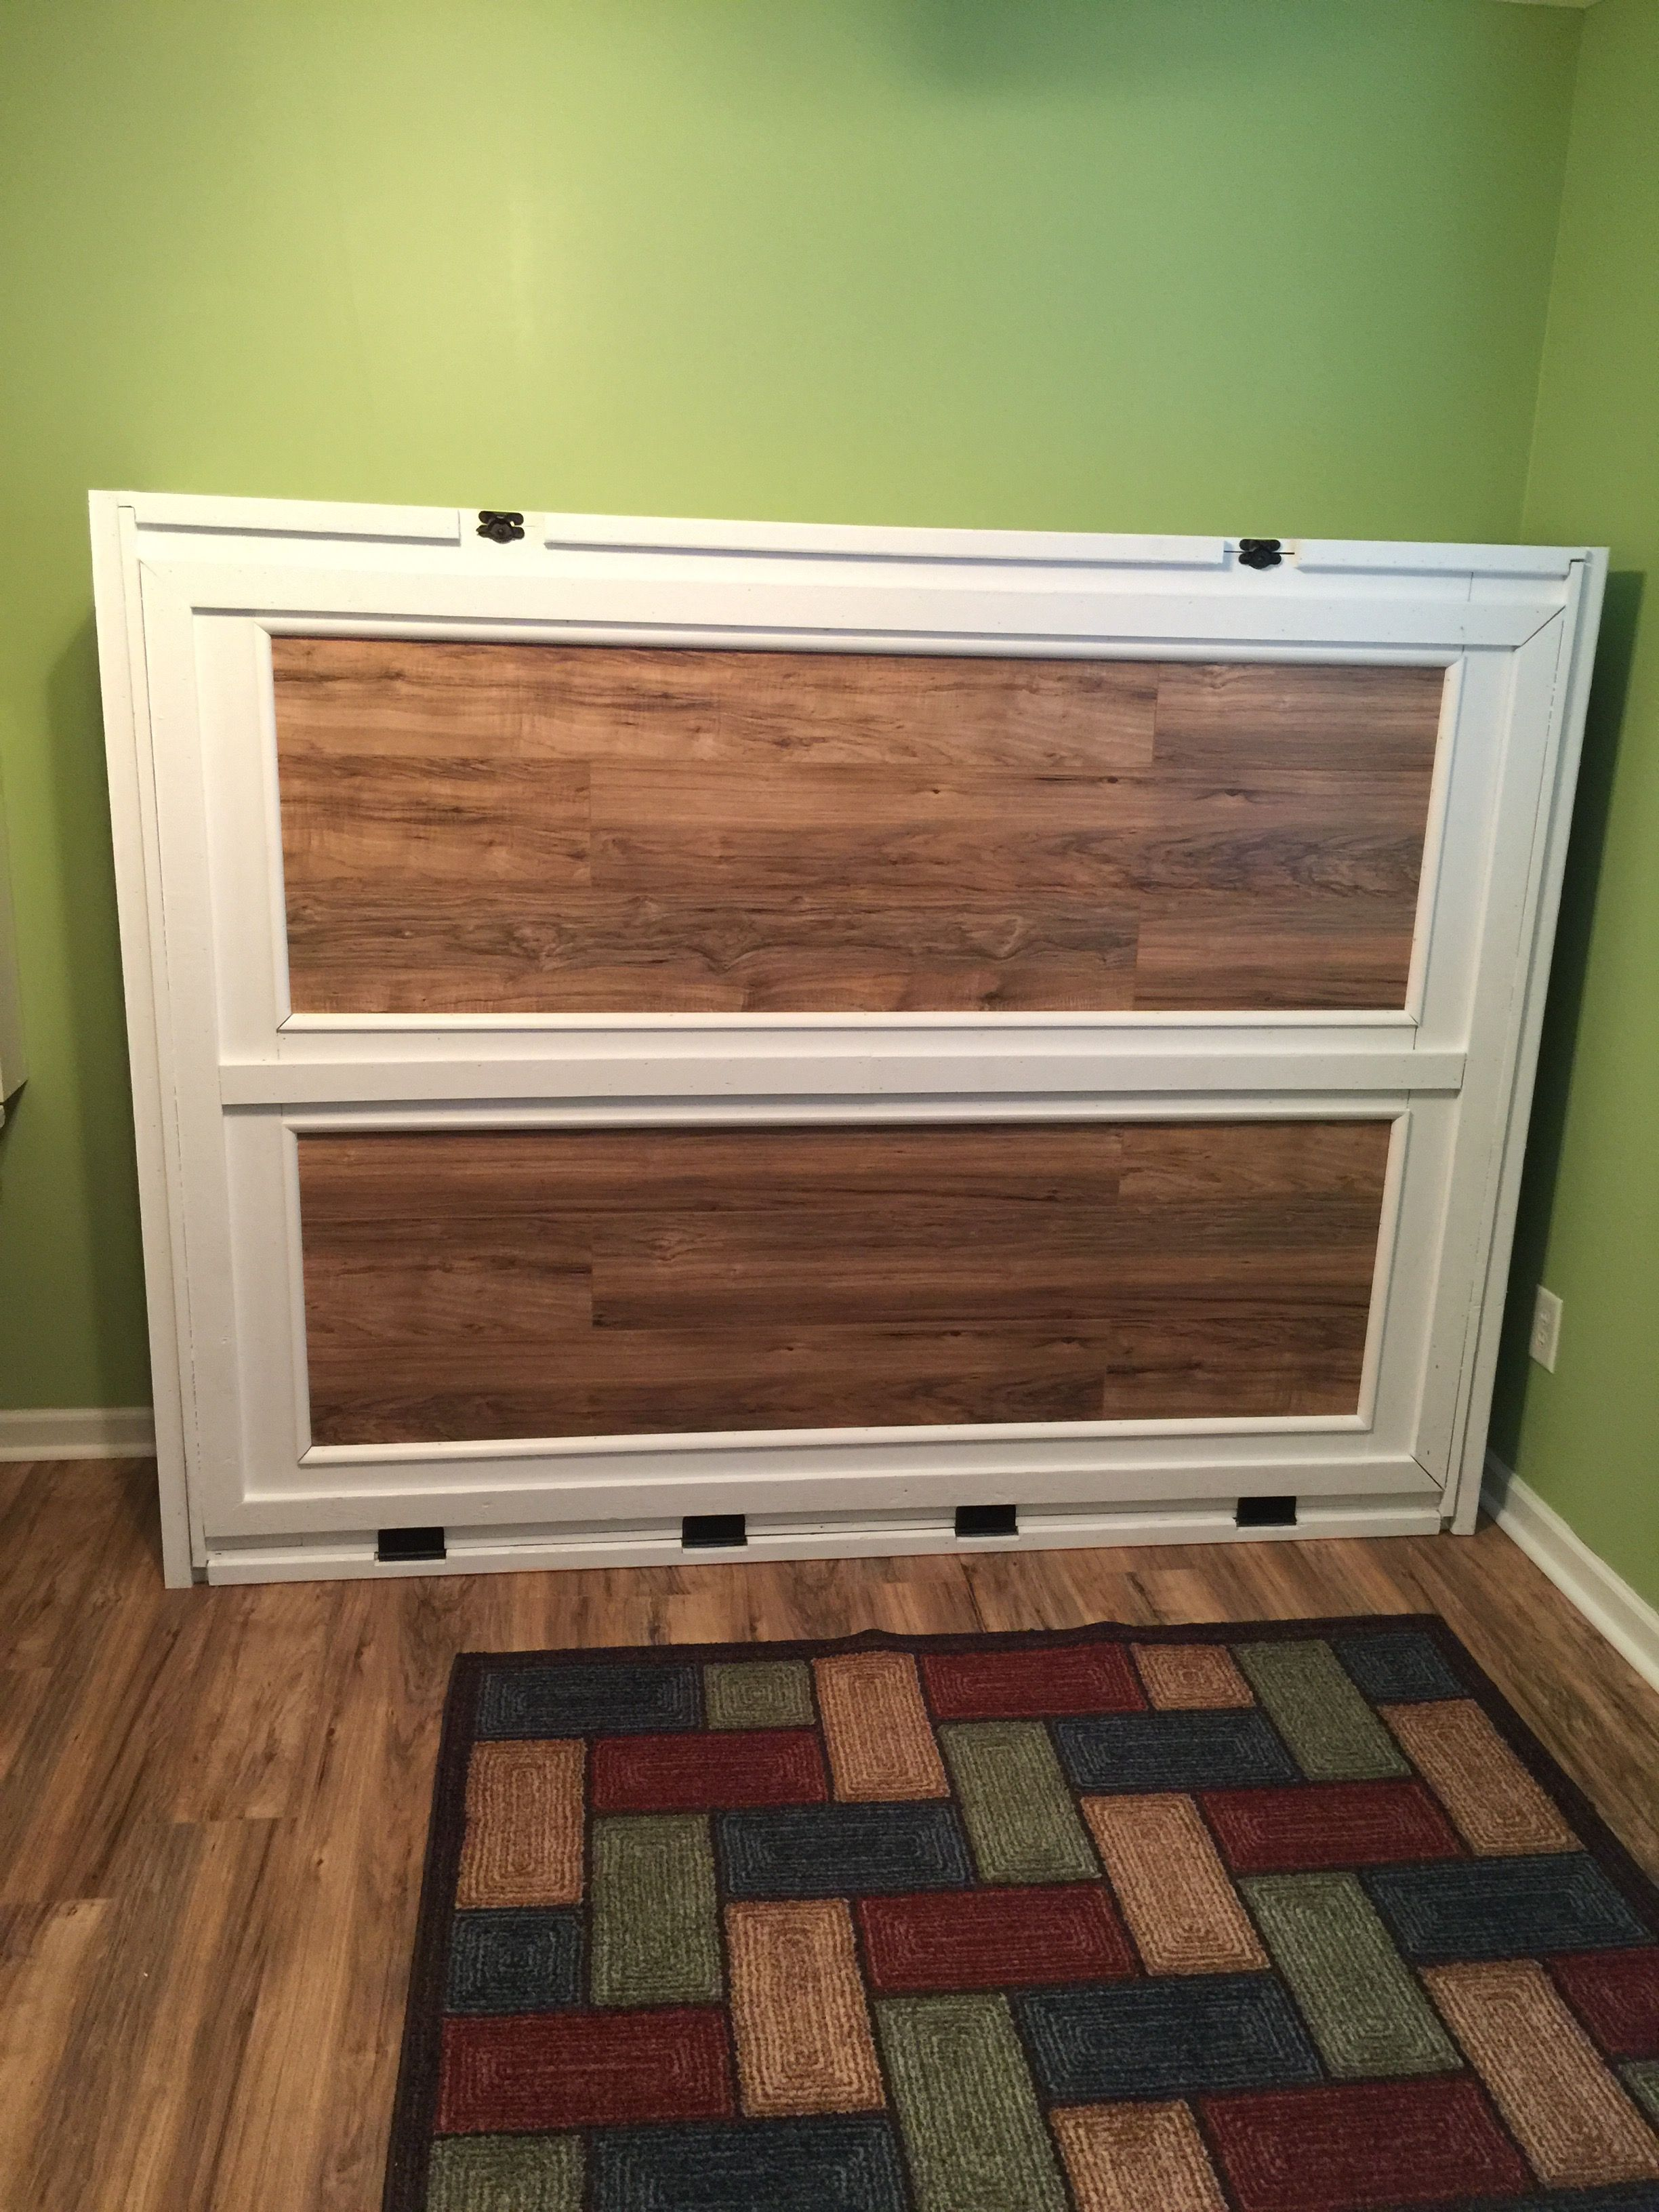 Queen murphy bed do it yourself home projects from ana white if queen murphy bed do it yourself home projects from ana white solutioingenieria Images